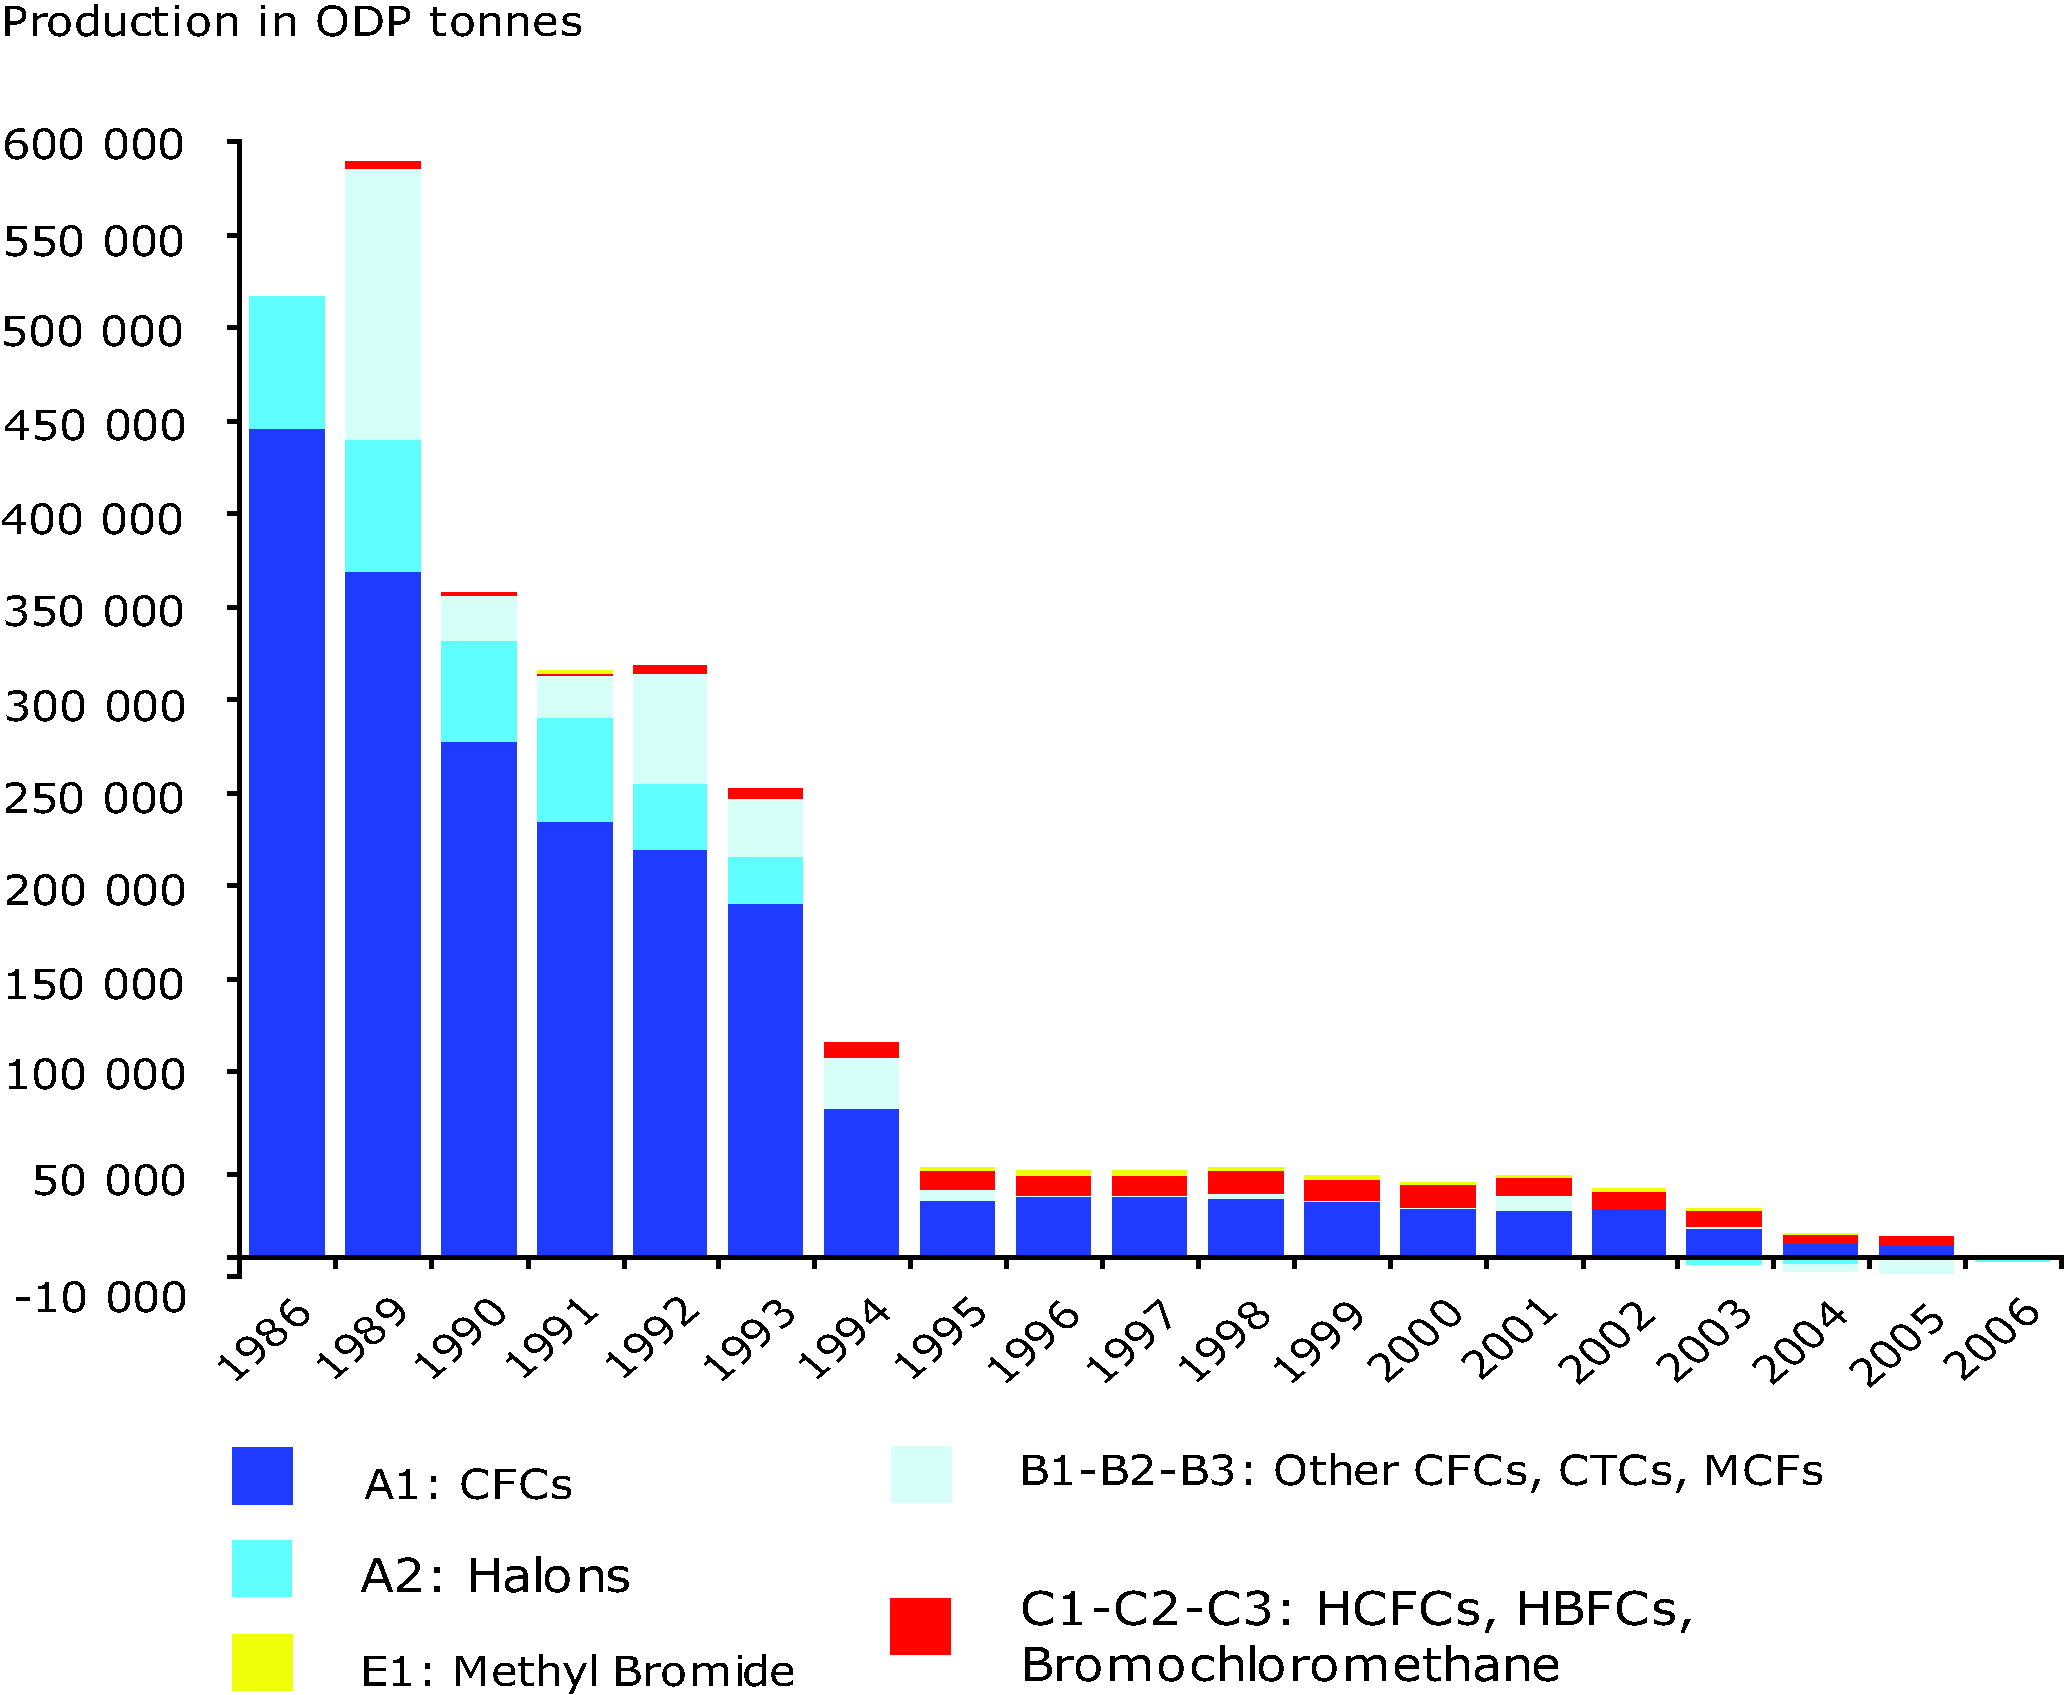 Production of ozone depleting substances in EEA member countries, 1986-2006